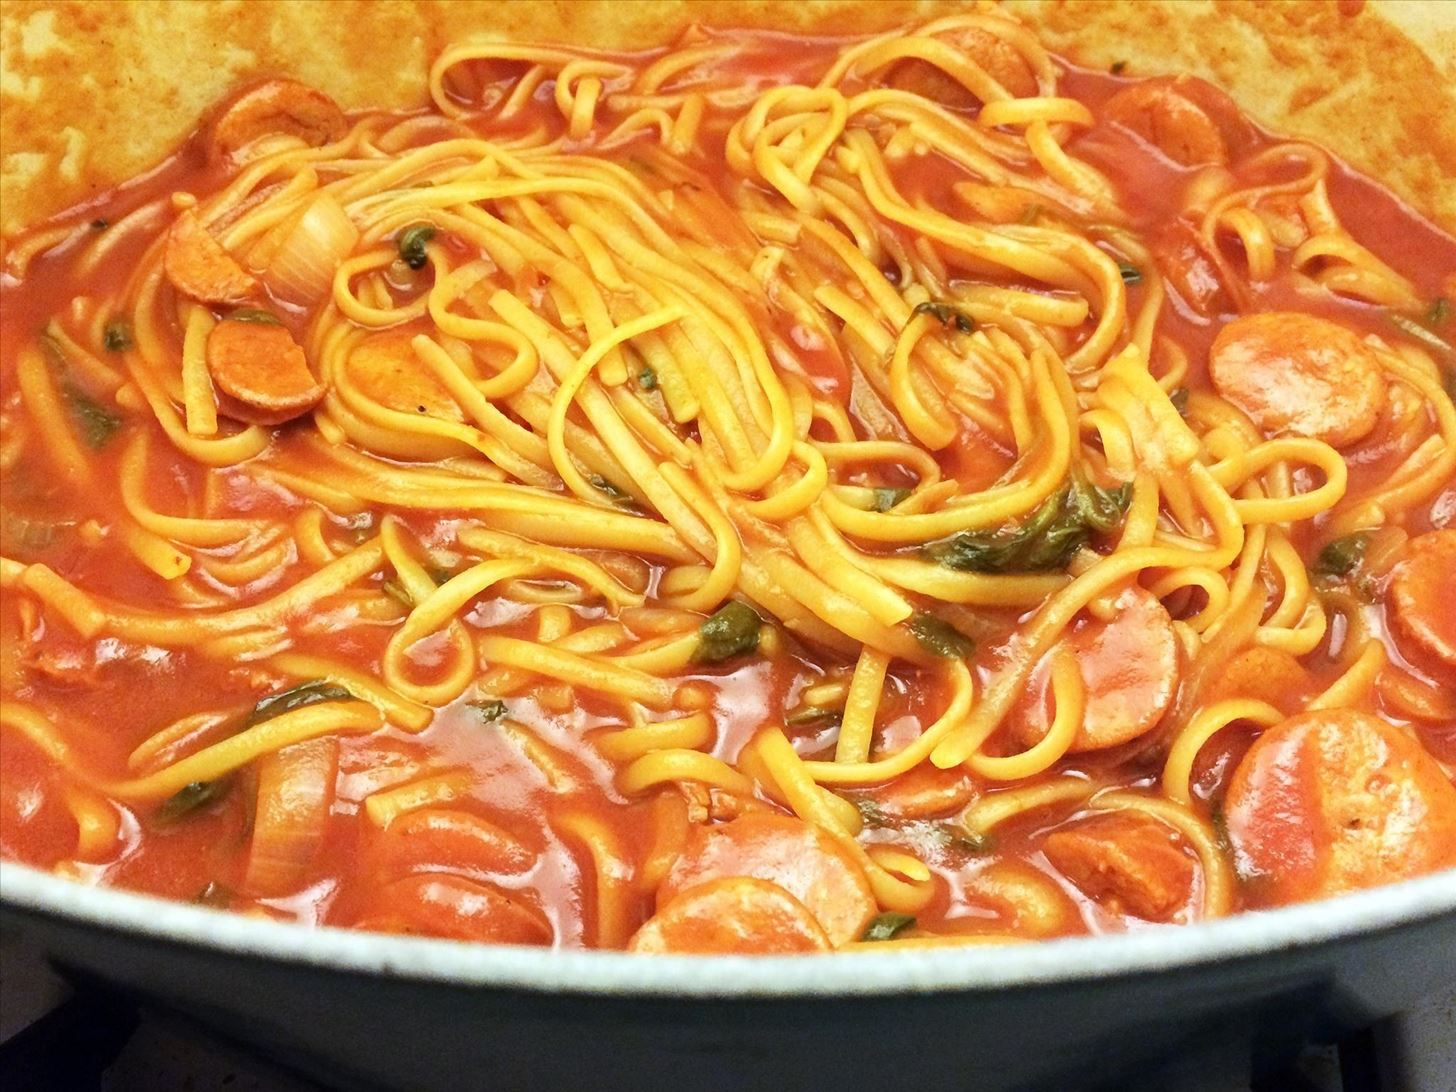 How to Make One-Pot Pasta That Doesn't Suck